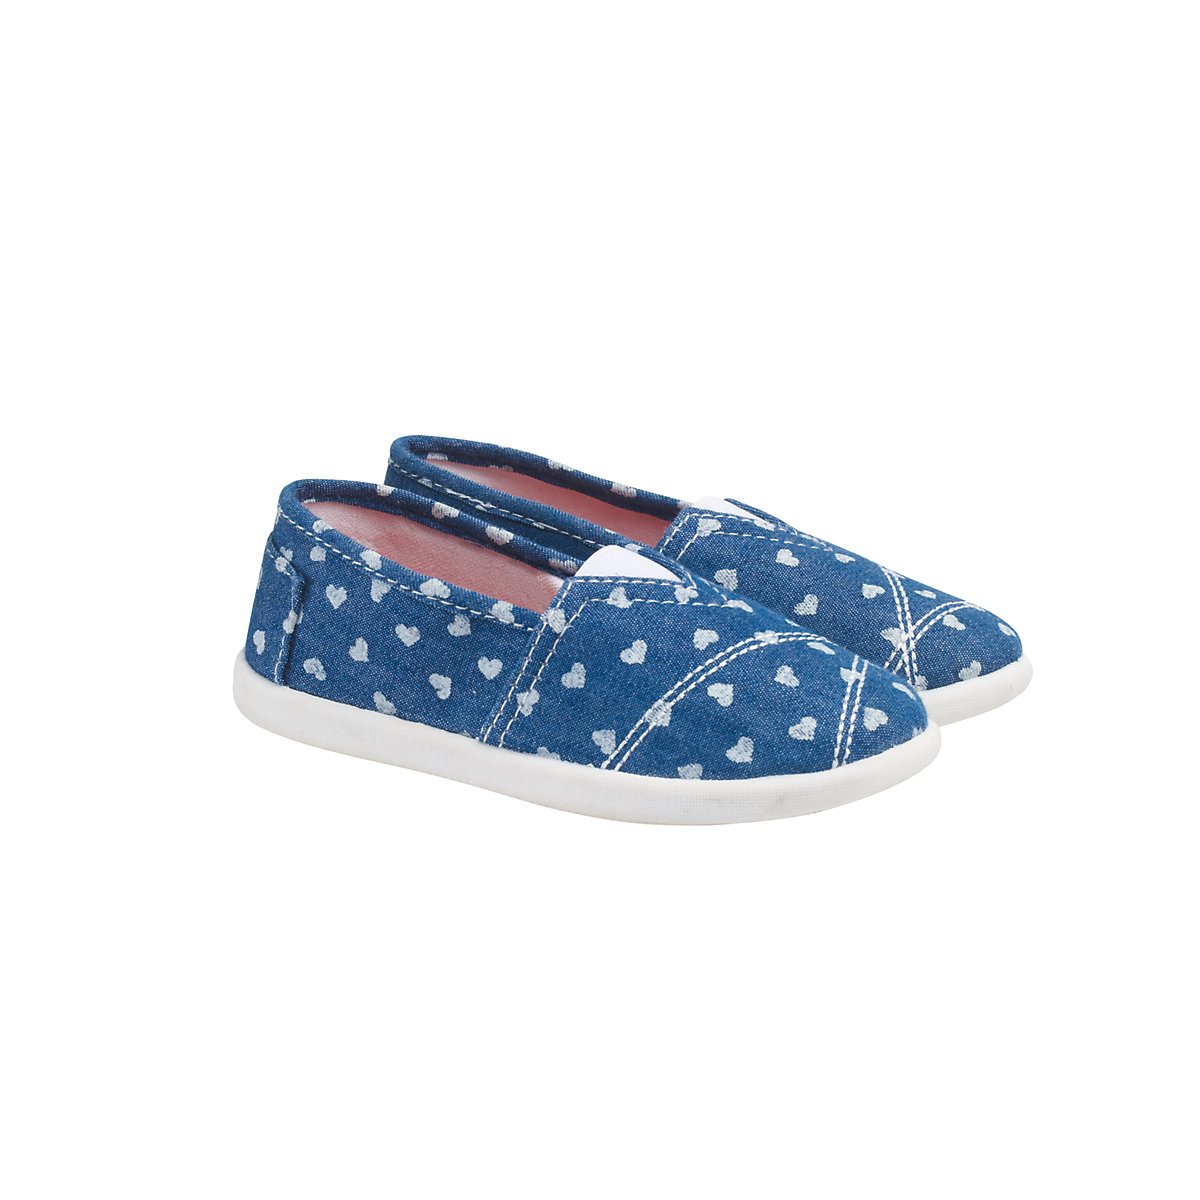 'Mothercare Denim Heart Gusset Canvas Shoes